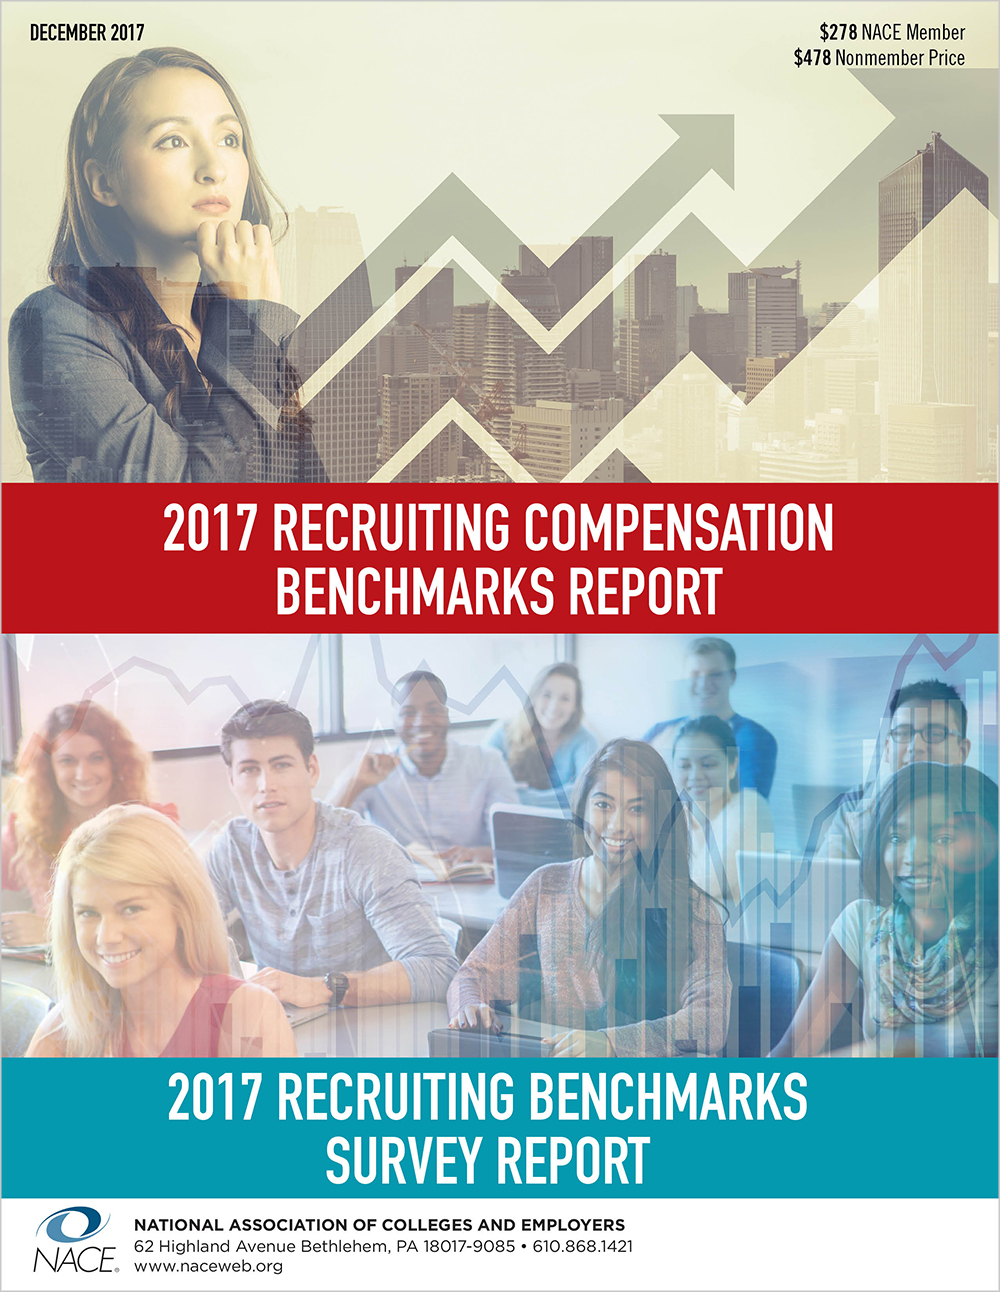 Recruiting Benchmarks & Compensation Combo 2017